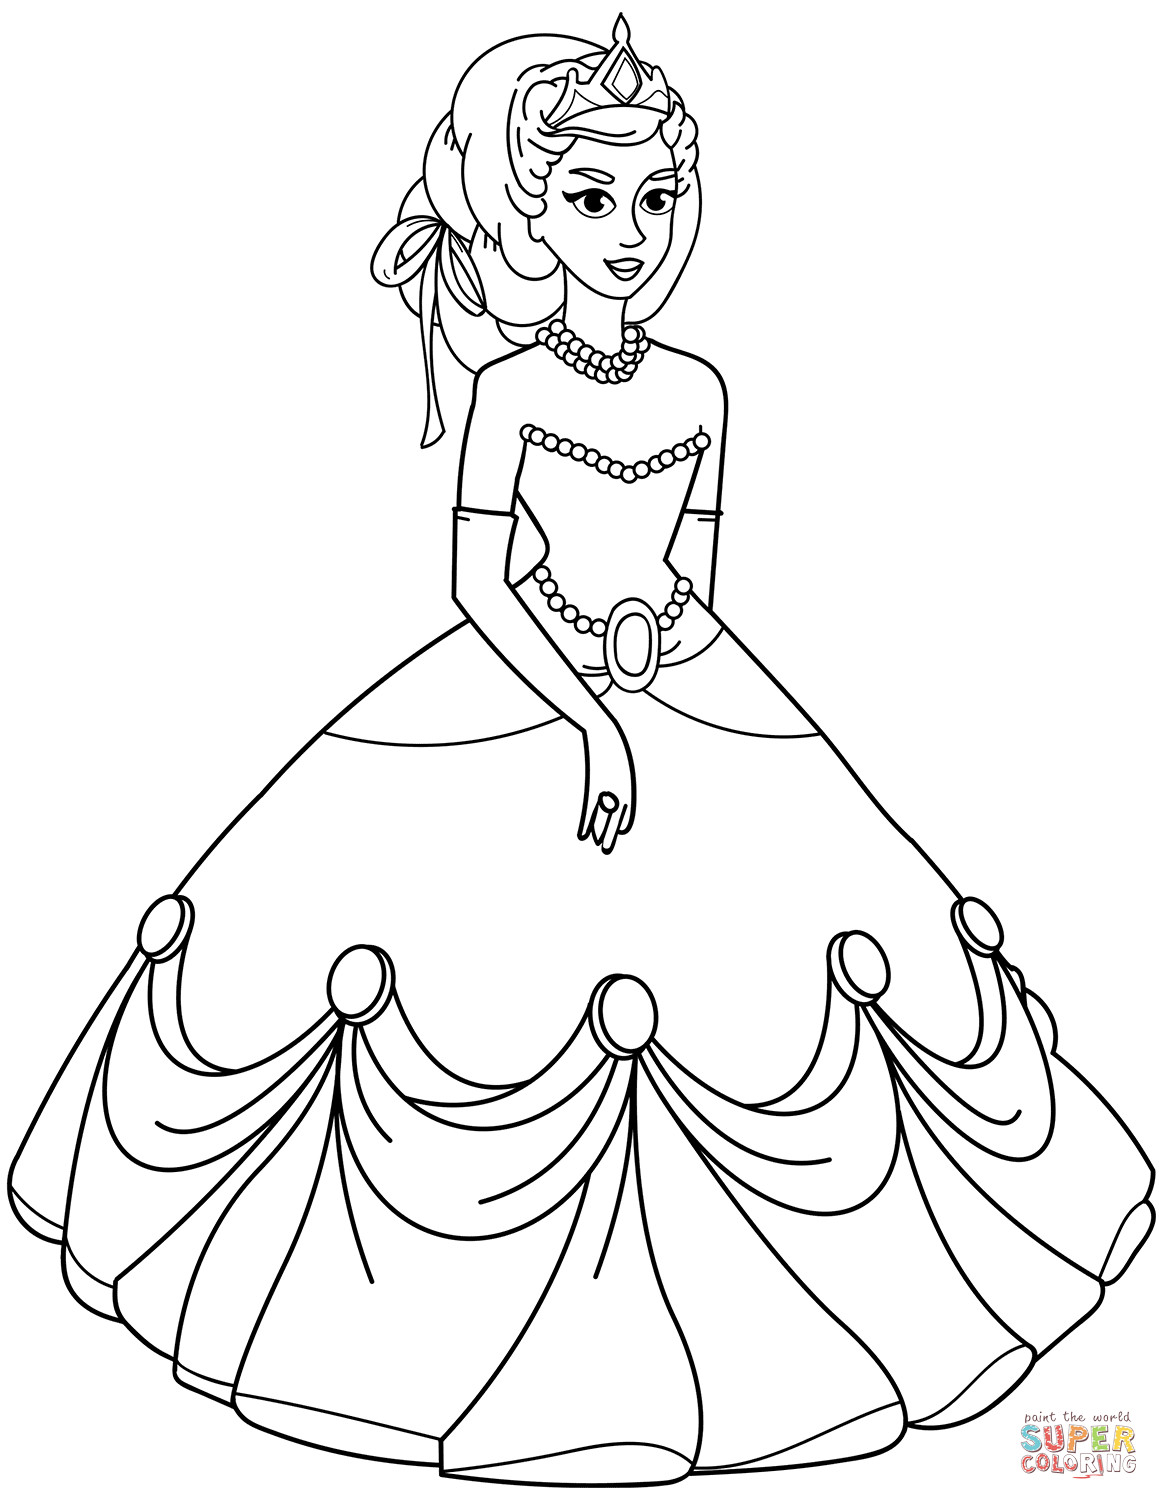 Coloring Sheets For Girls Princess Dresses  Princess in Ball Gown Dress coloring page